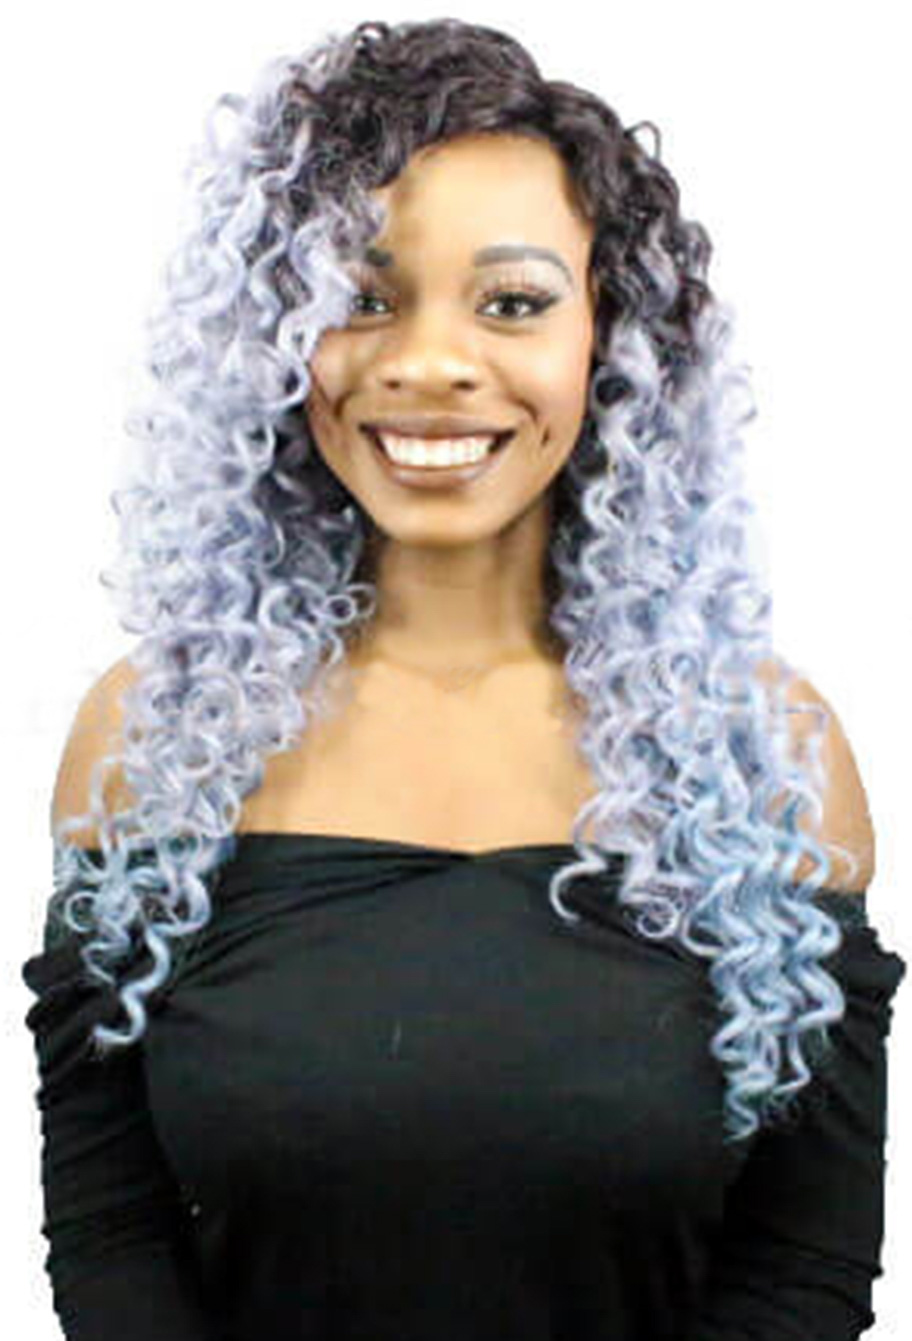 Peruca Orgânica - Front Lace Sleek Wig Fashion - Chocolate